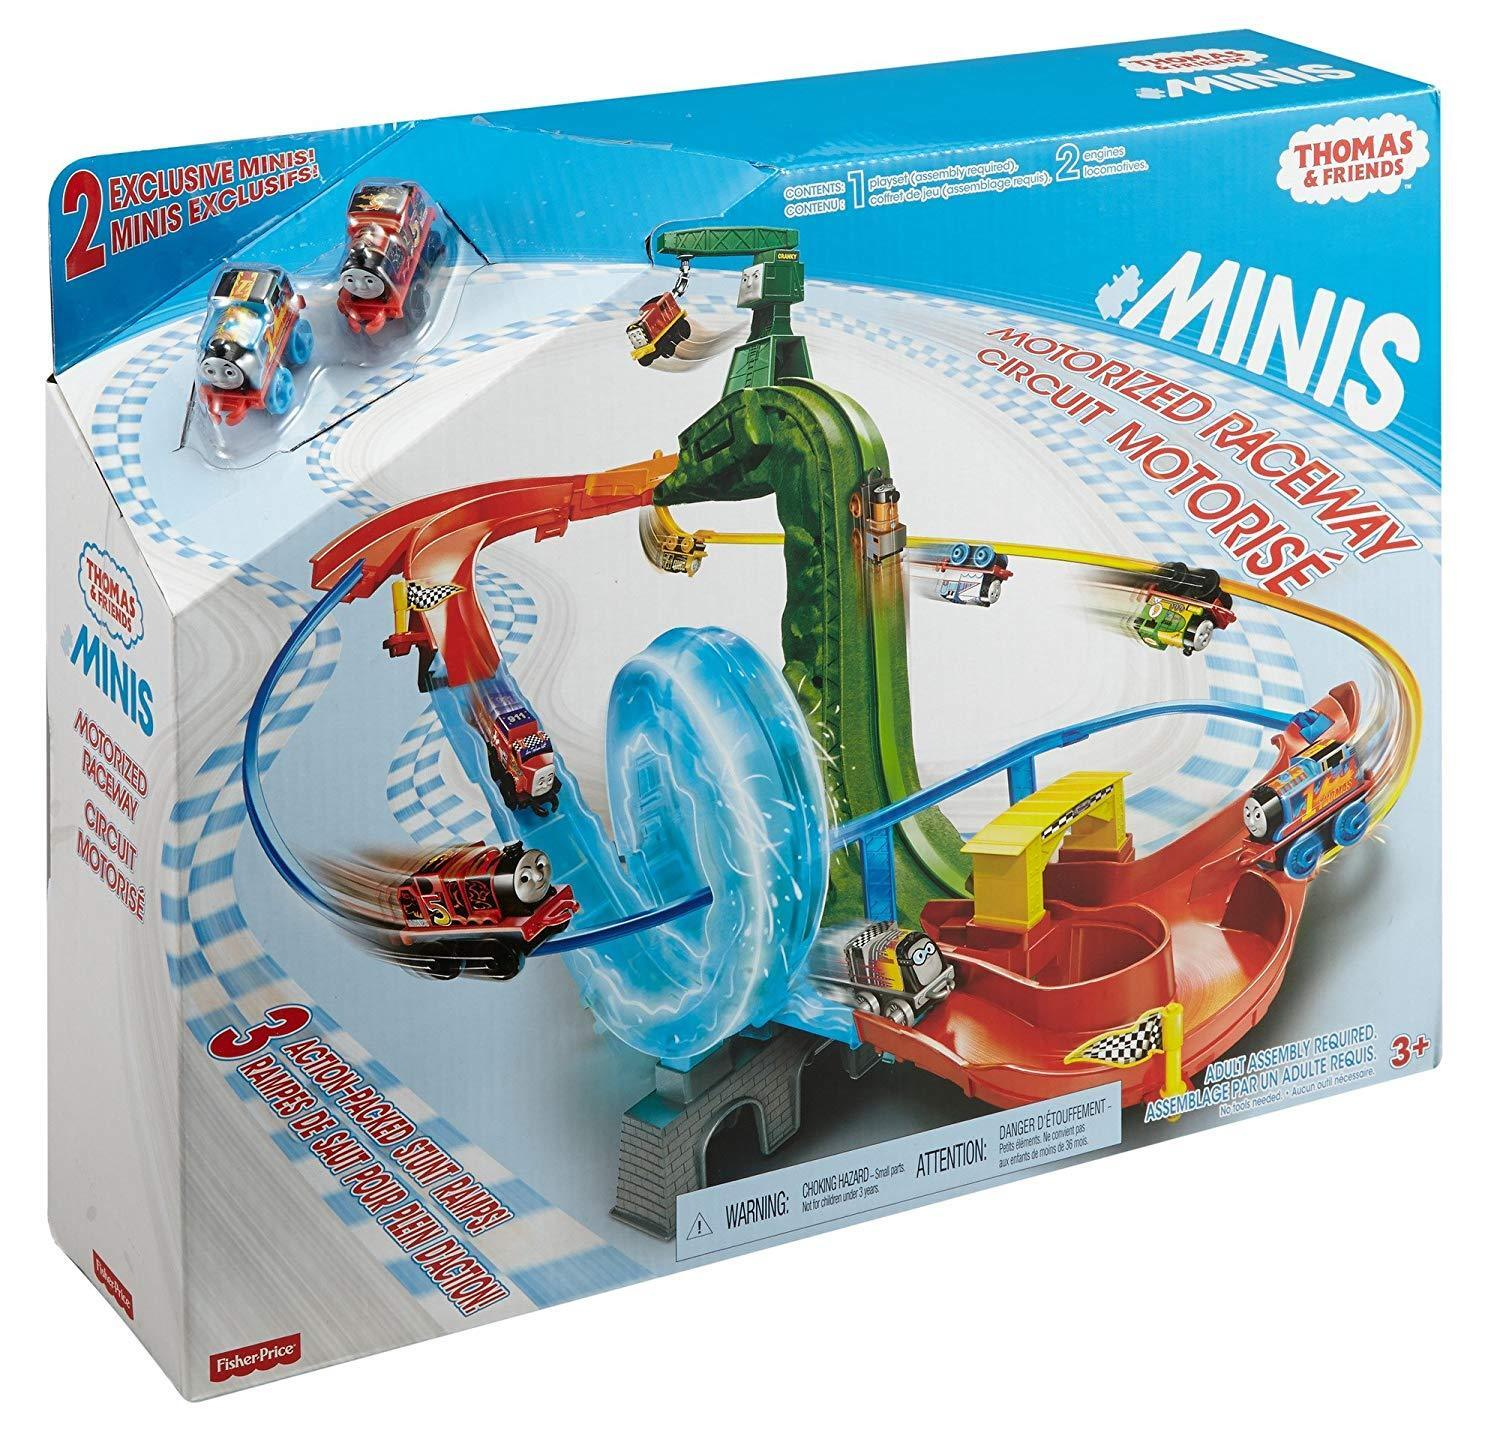 Thomas & Friends MINIS Motorised Stunt Raceway Set Inc James & Thomas Minis